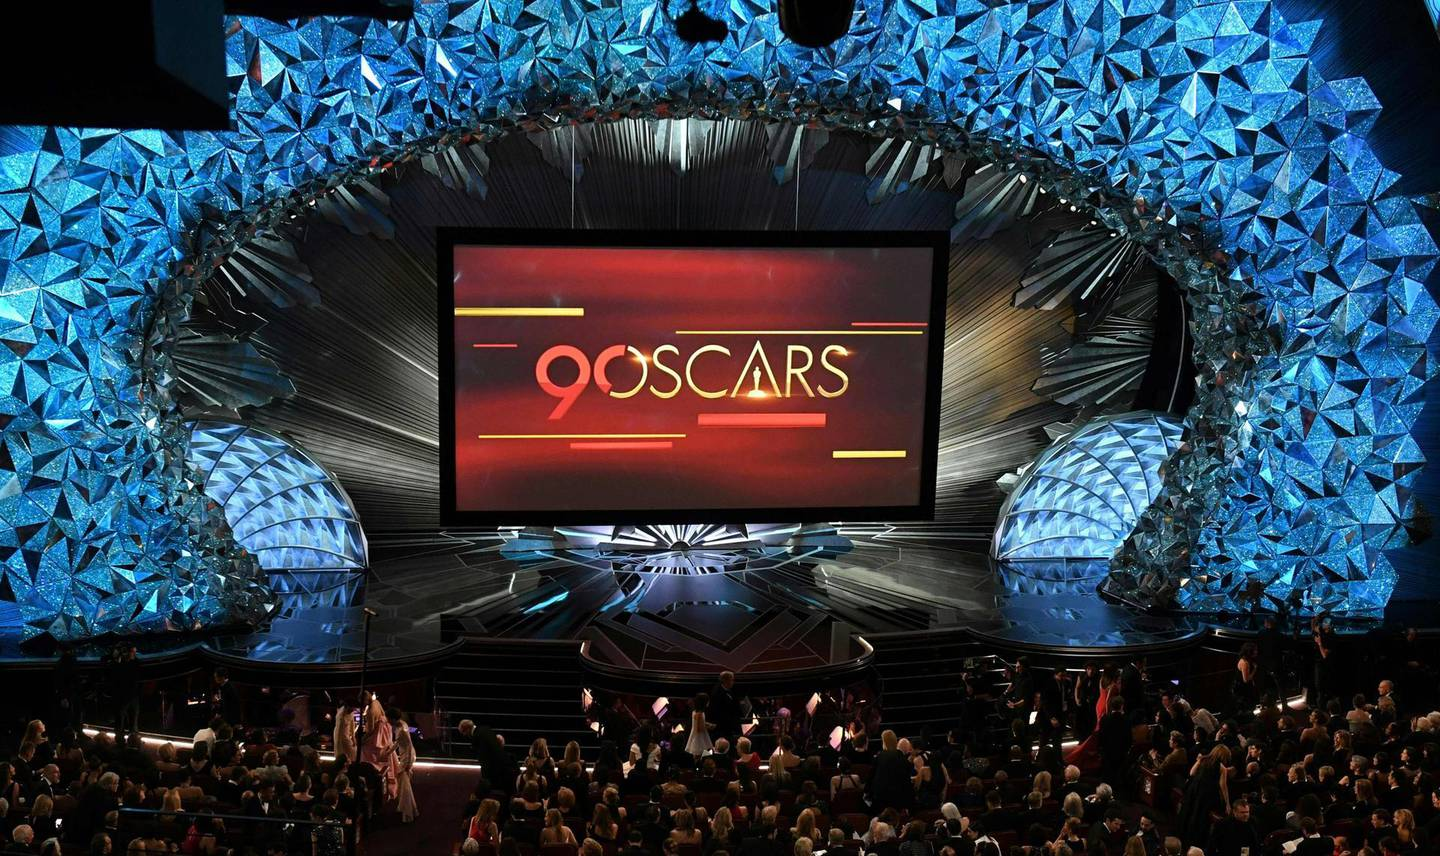 (FILES) In this file photo taken on March 04, 2018 A general view shows the stage during the 90th Annual Academy Awards show in Hollywood, California. The 93rd Oscars have been postponed by eight weeks to April 25 after the coronavirus pandemic shuttered movie theaters and wreaked havoc on Hollywood's release calendar, the Academy said June 15, 2020. / AFP / Mark RALSTON